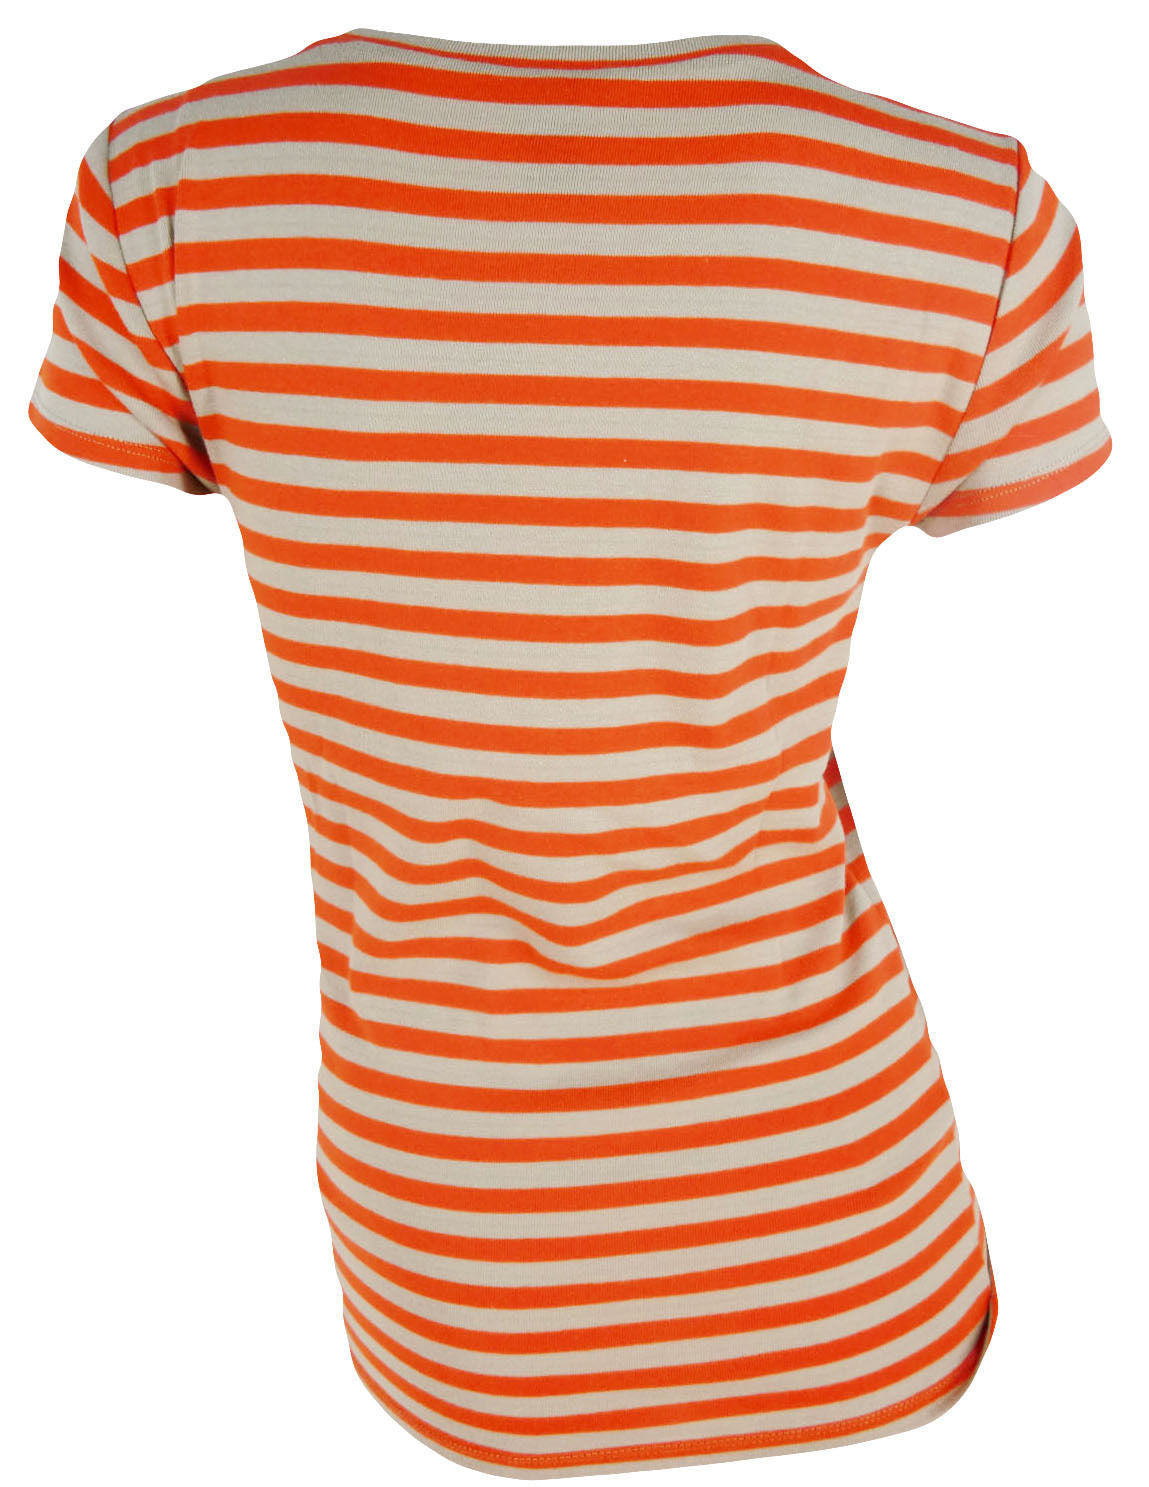 Ann Taylor Striped Short Sleeve TShirt,Shirts,Ann Taylor - Discount Divas